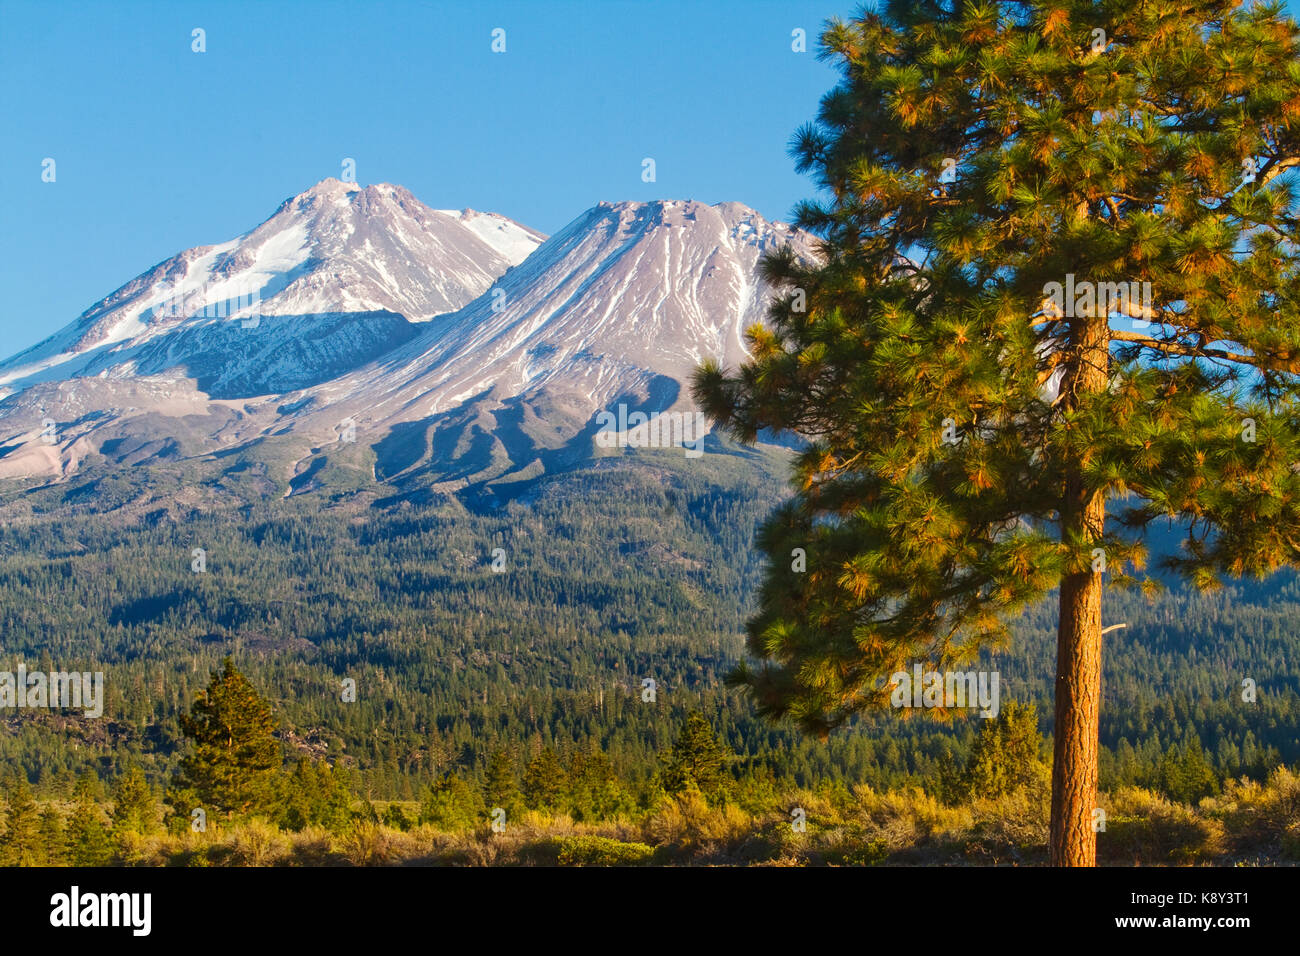 USA, California, Mount Shasta - Stock Image